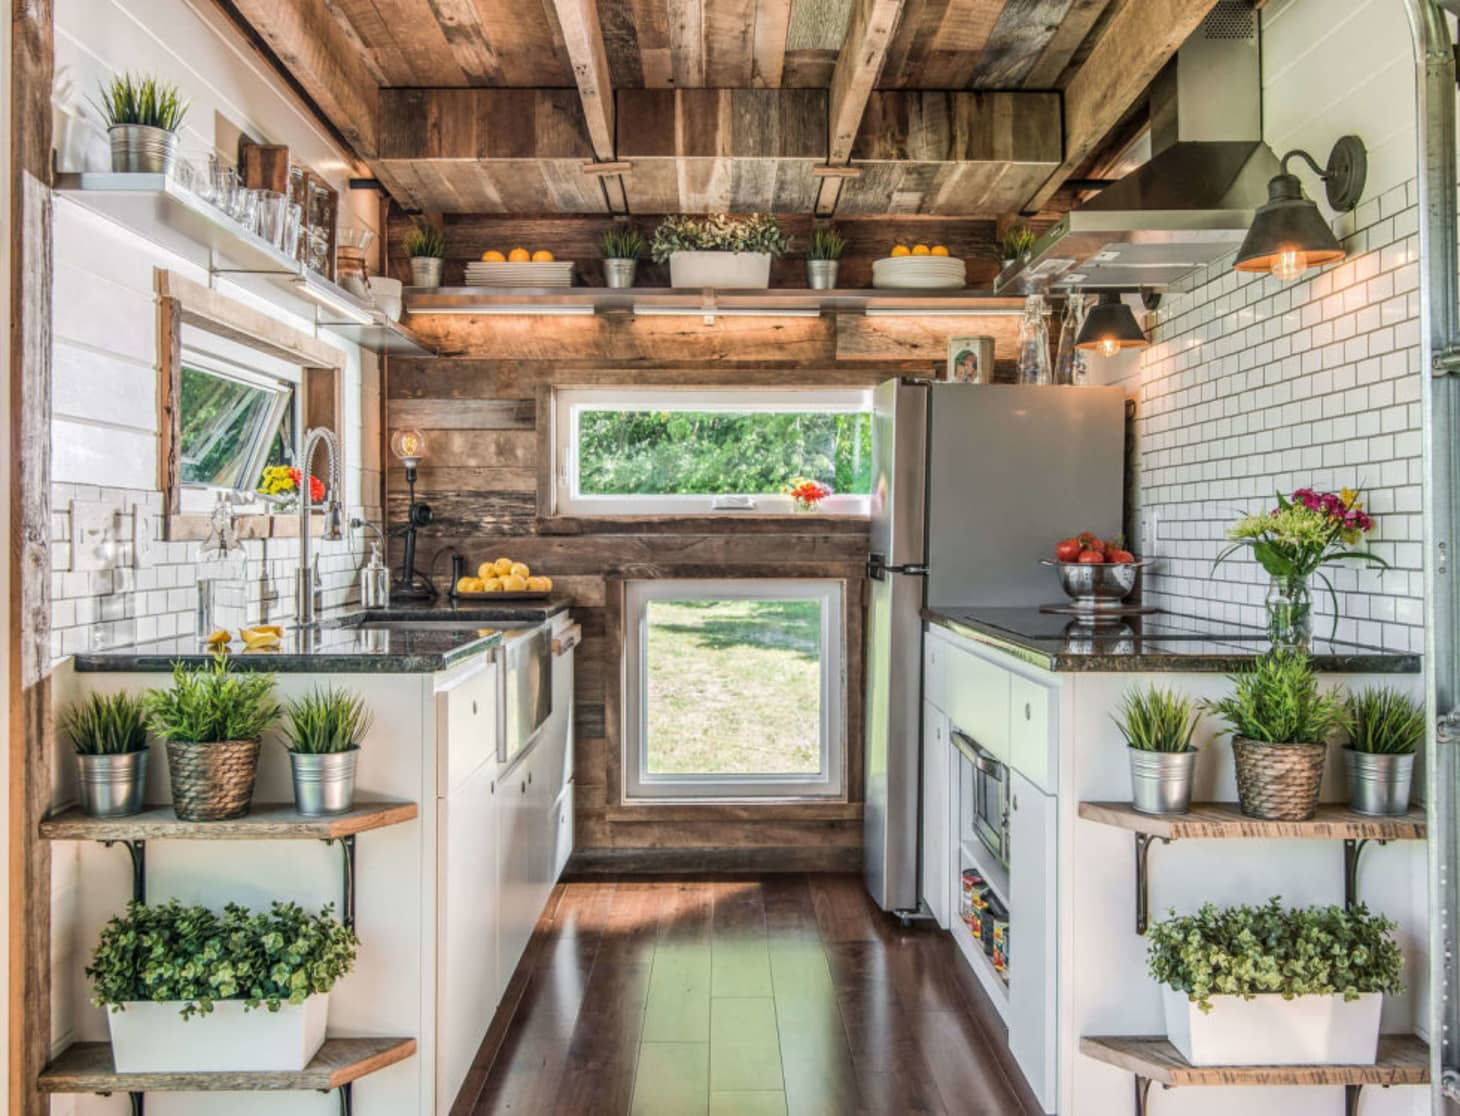 7 Kitchen Storage Ideas To Steal From Tiny Houses Kitchn